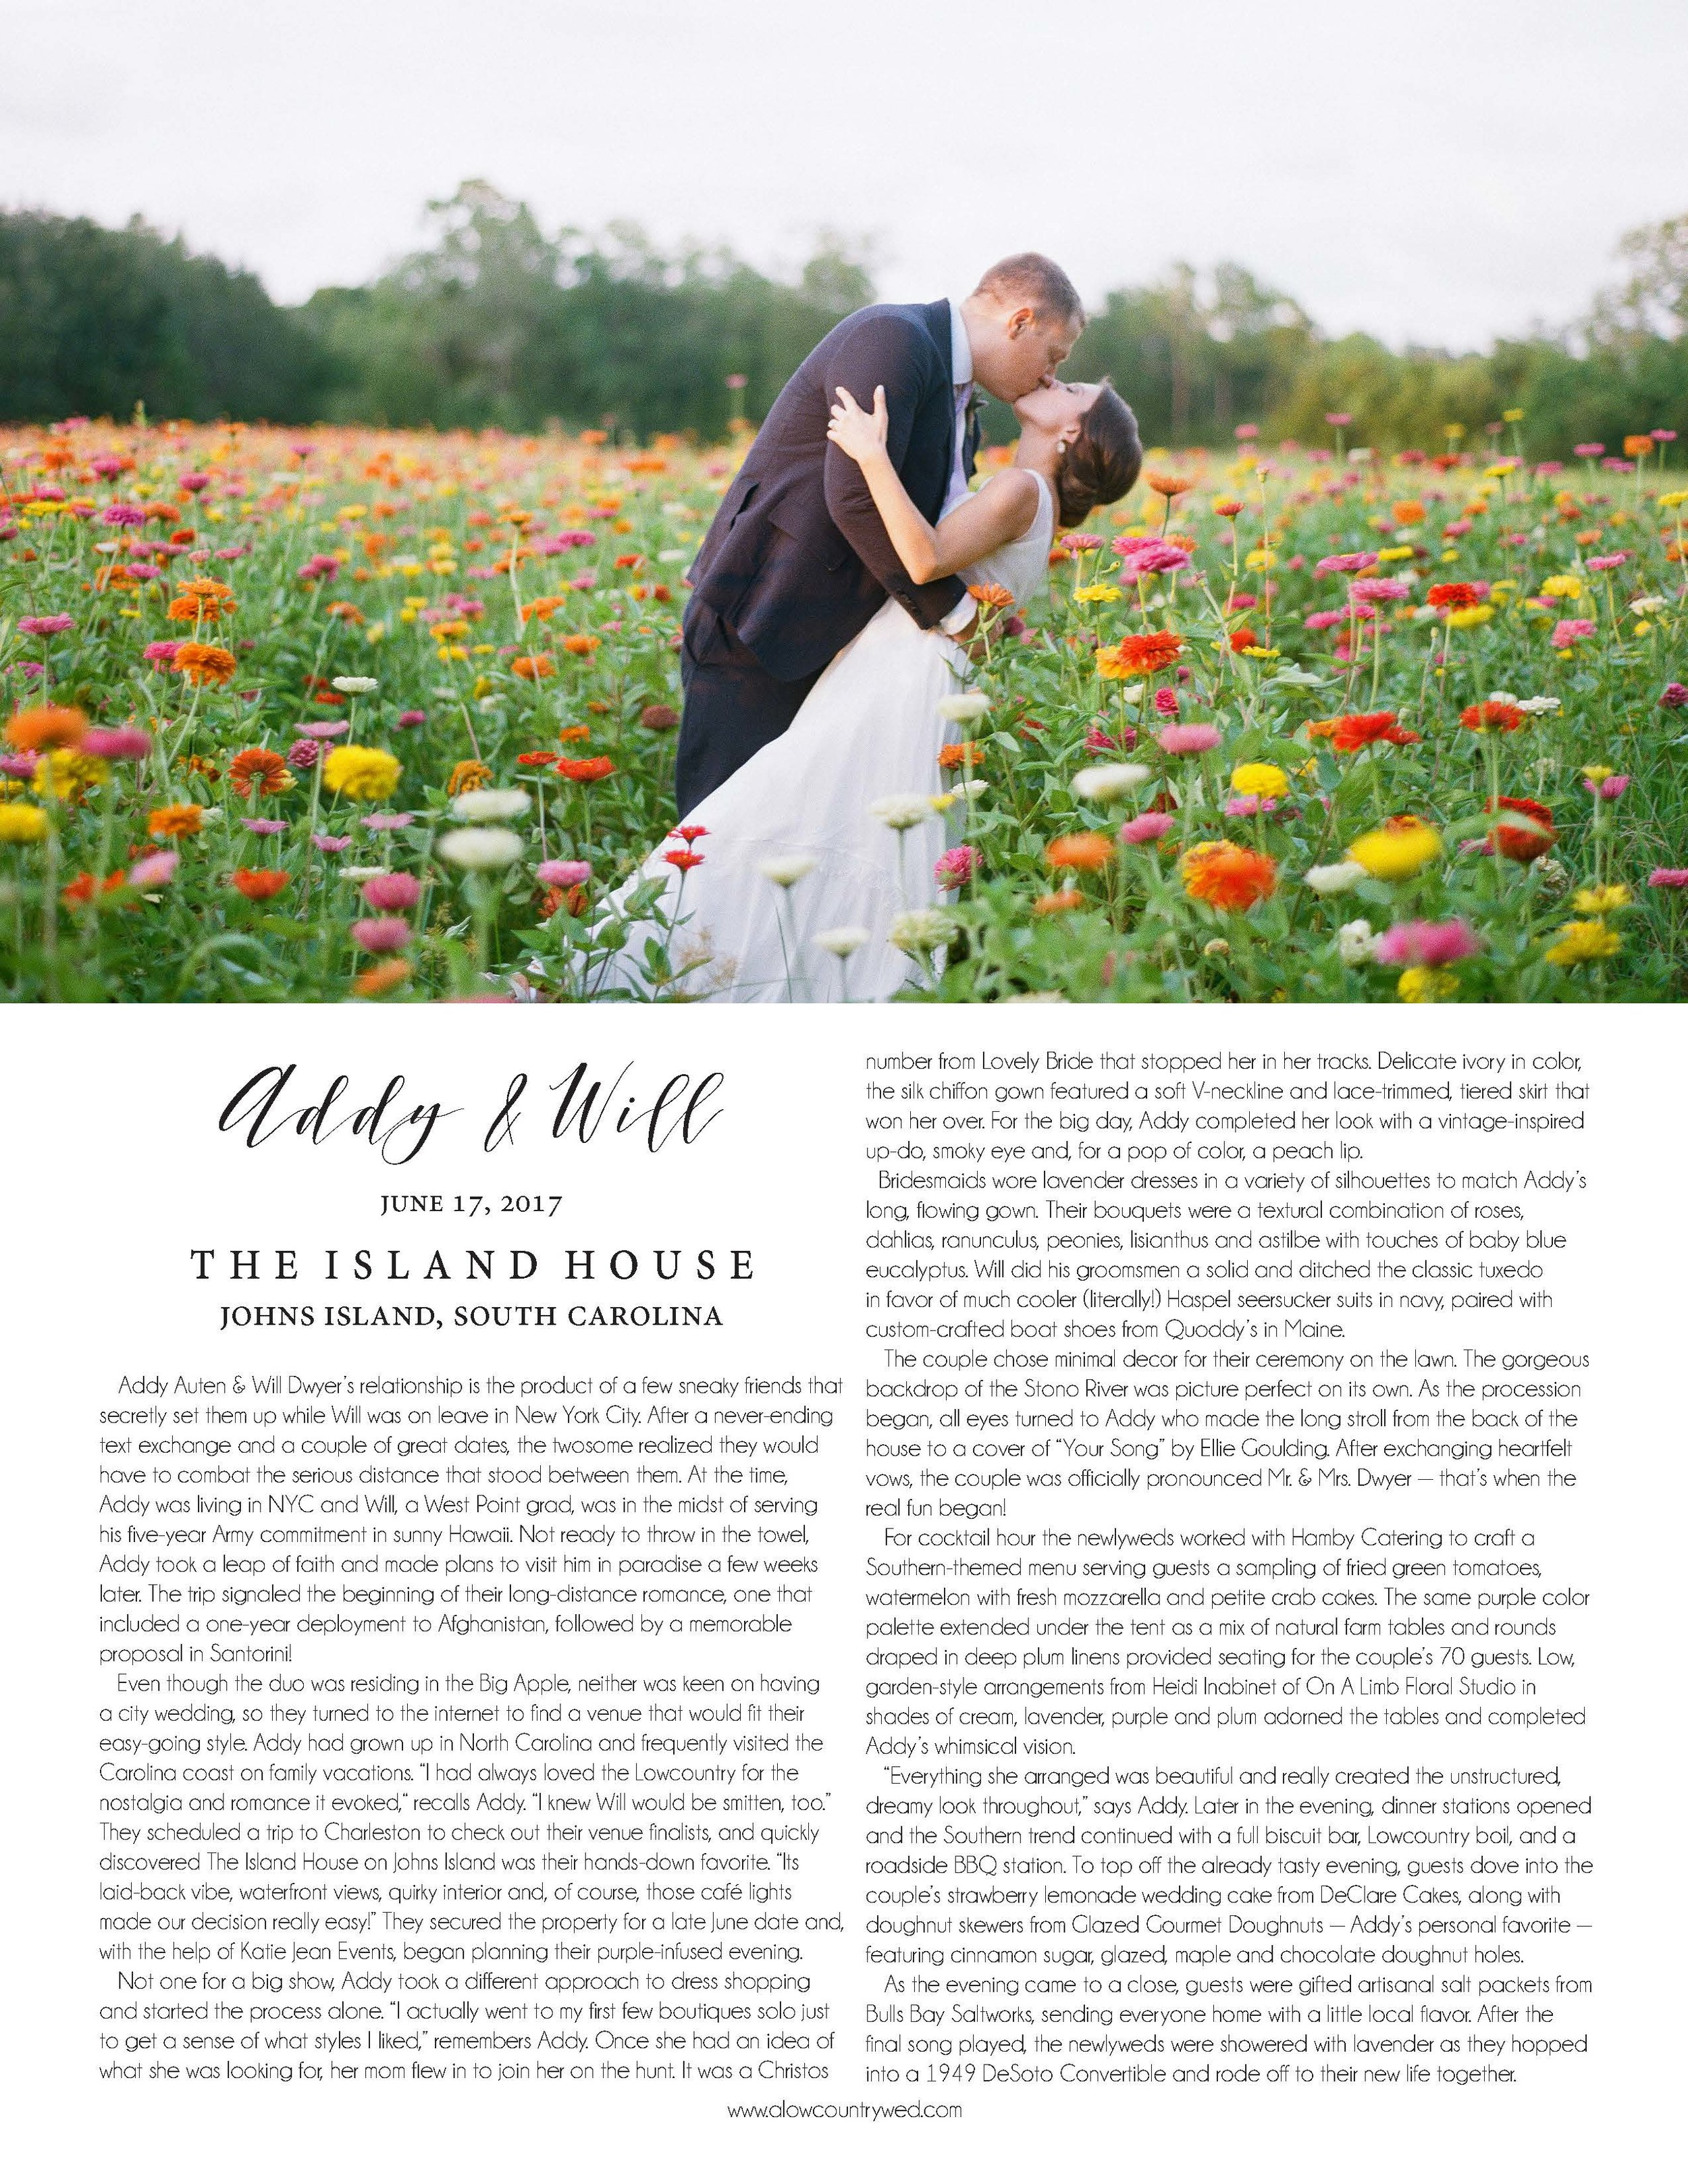 Lauren-Jonas-Photography-published-in-A-Lowcountry-Wedding-Magazine_Page_1.jpg